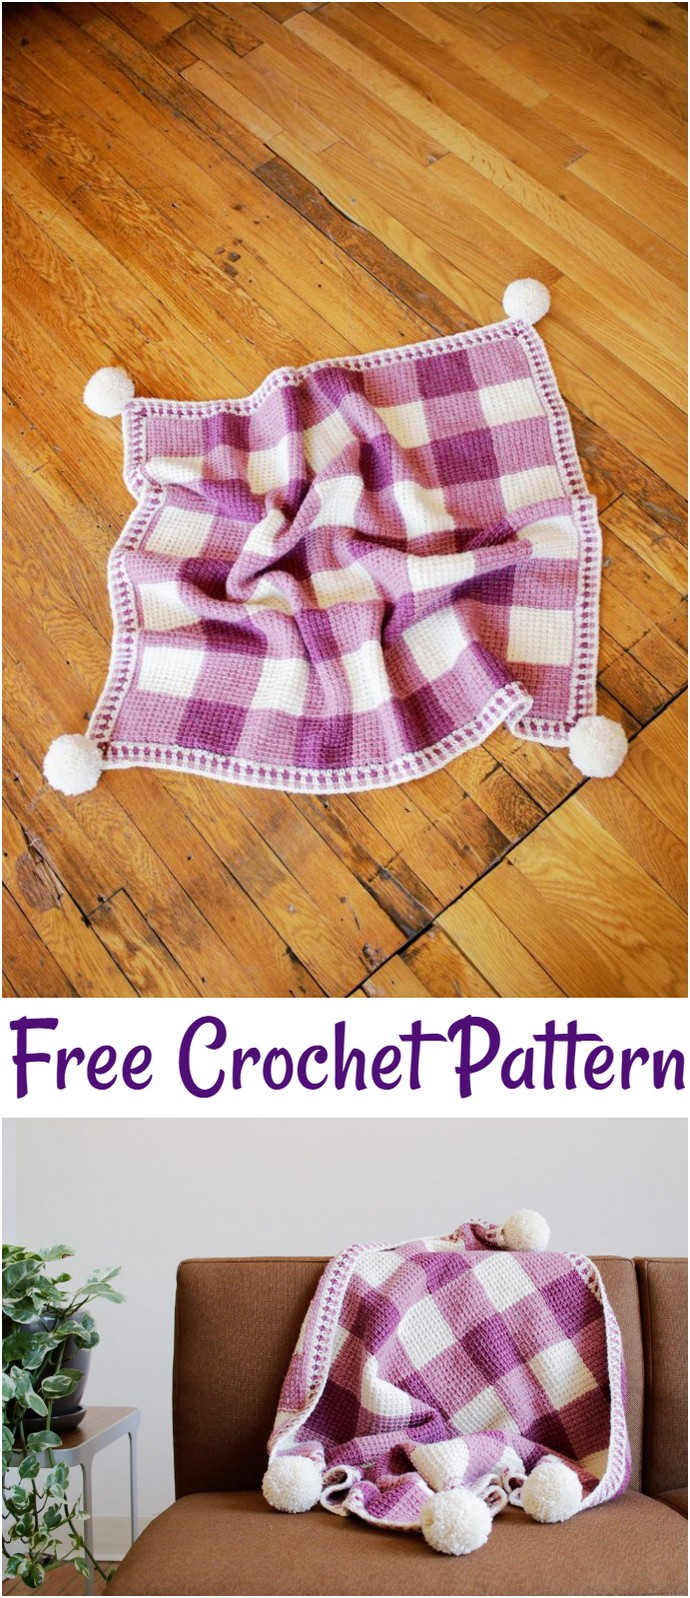 The Sweet Gingham Blanket